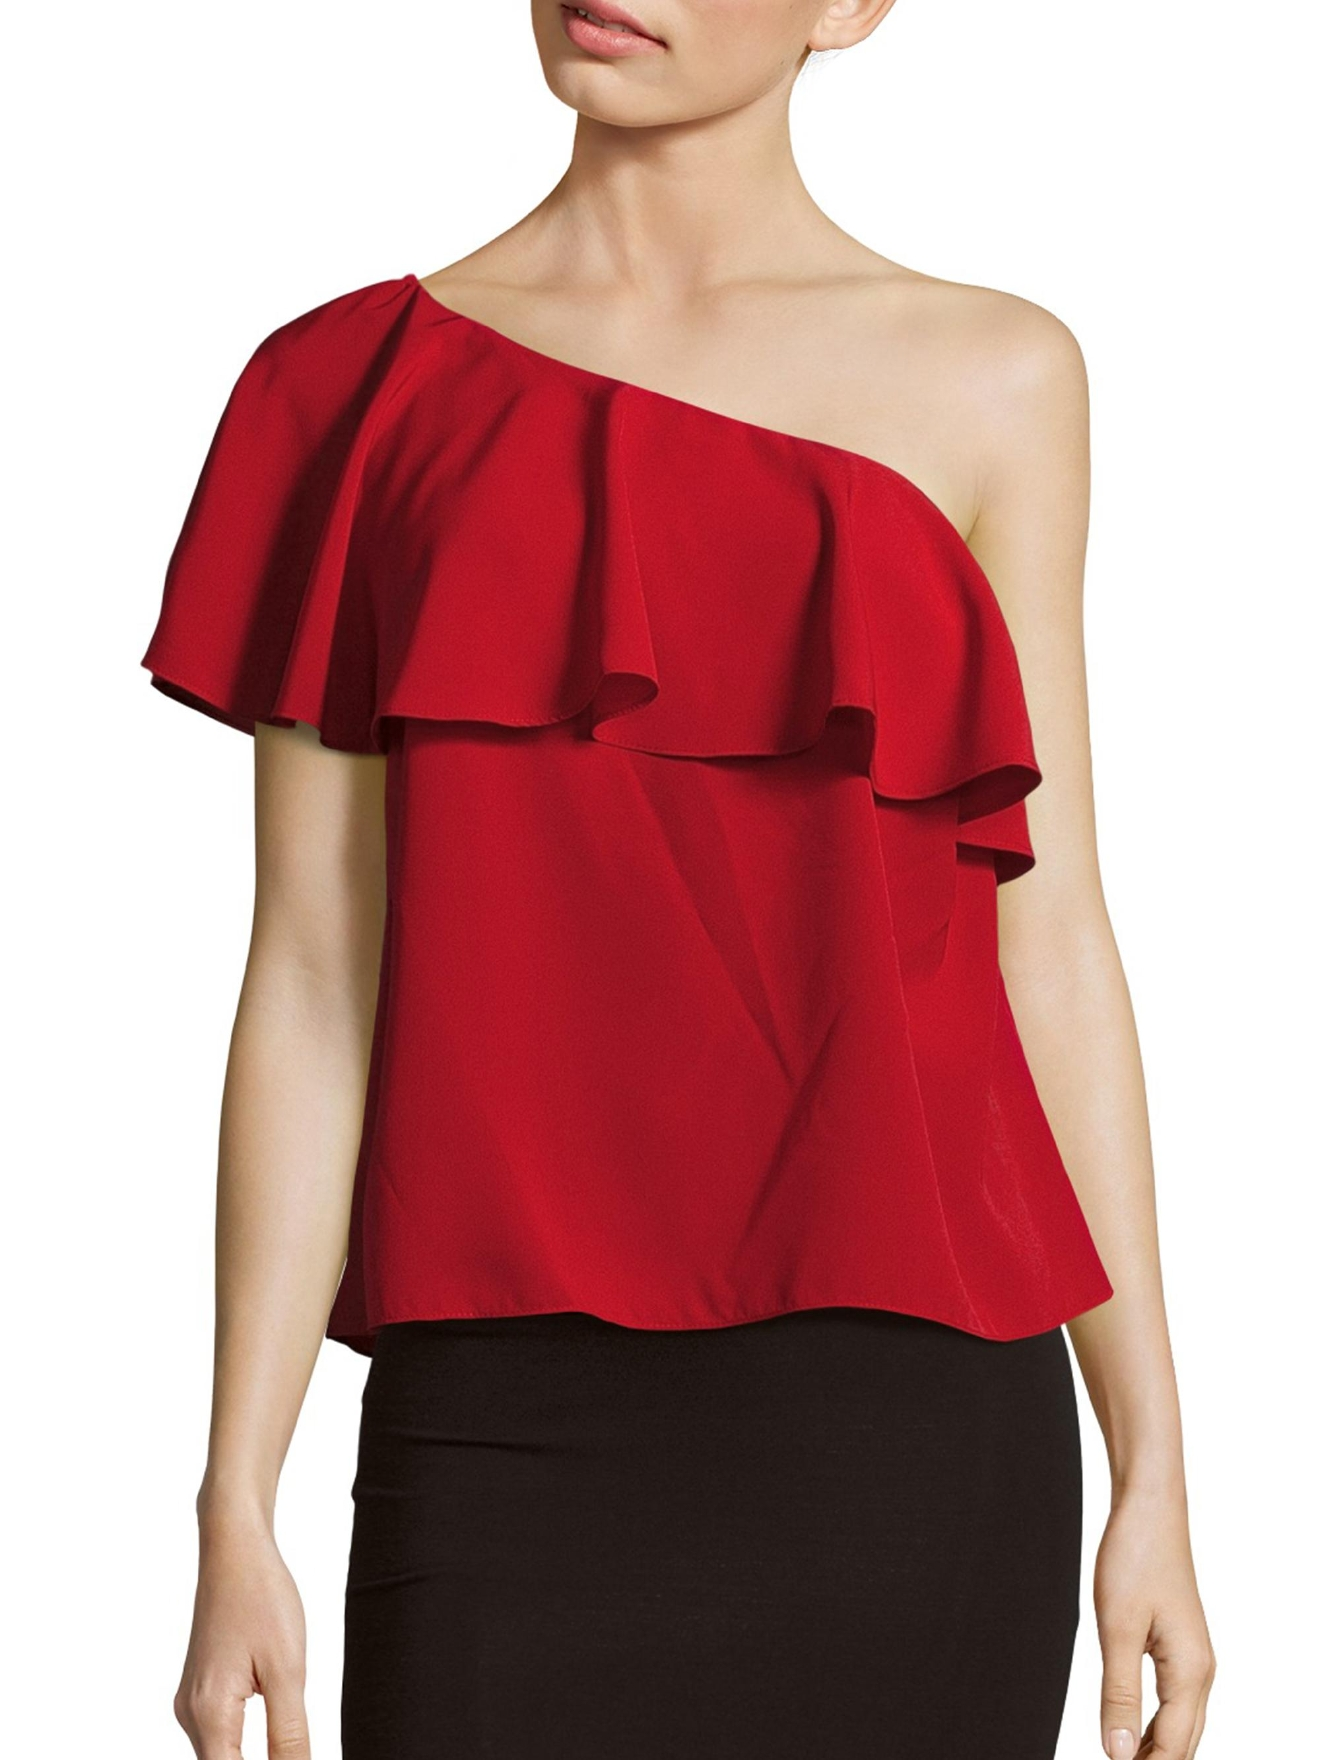 Off the Shoulder - Amanda Uprichard (Saks OFF 5TH)